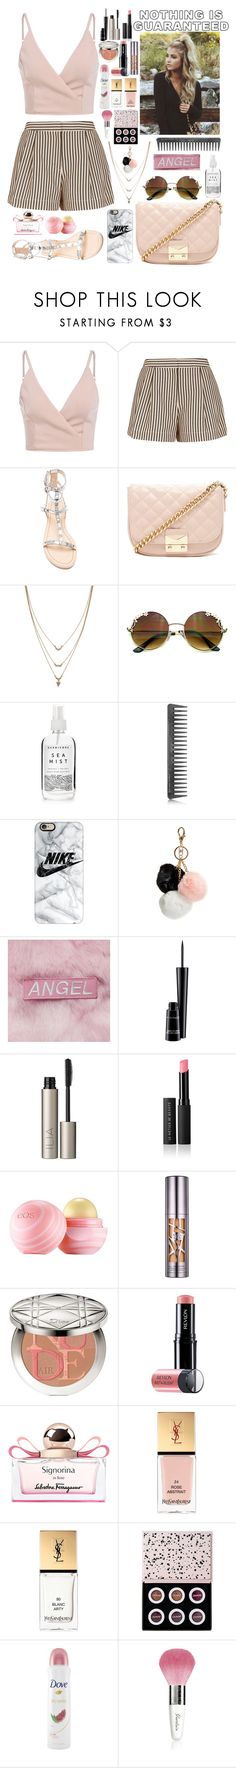 """""""Nothing is Guaranteed"""" by autumnj24 ❤ liked on Polyvore featuring 3.1 Phillip Lim, Rebecca Minkoff, Forever 21, Jessica Simpson, Herbivore, GHD, Casetify, GUESS, MAC Cosmetics and Ilia"""